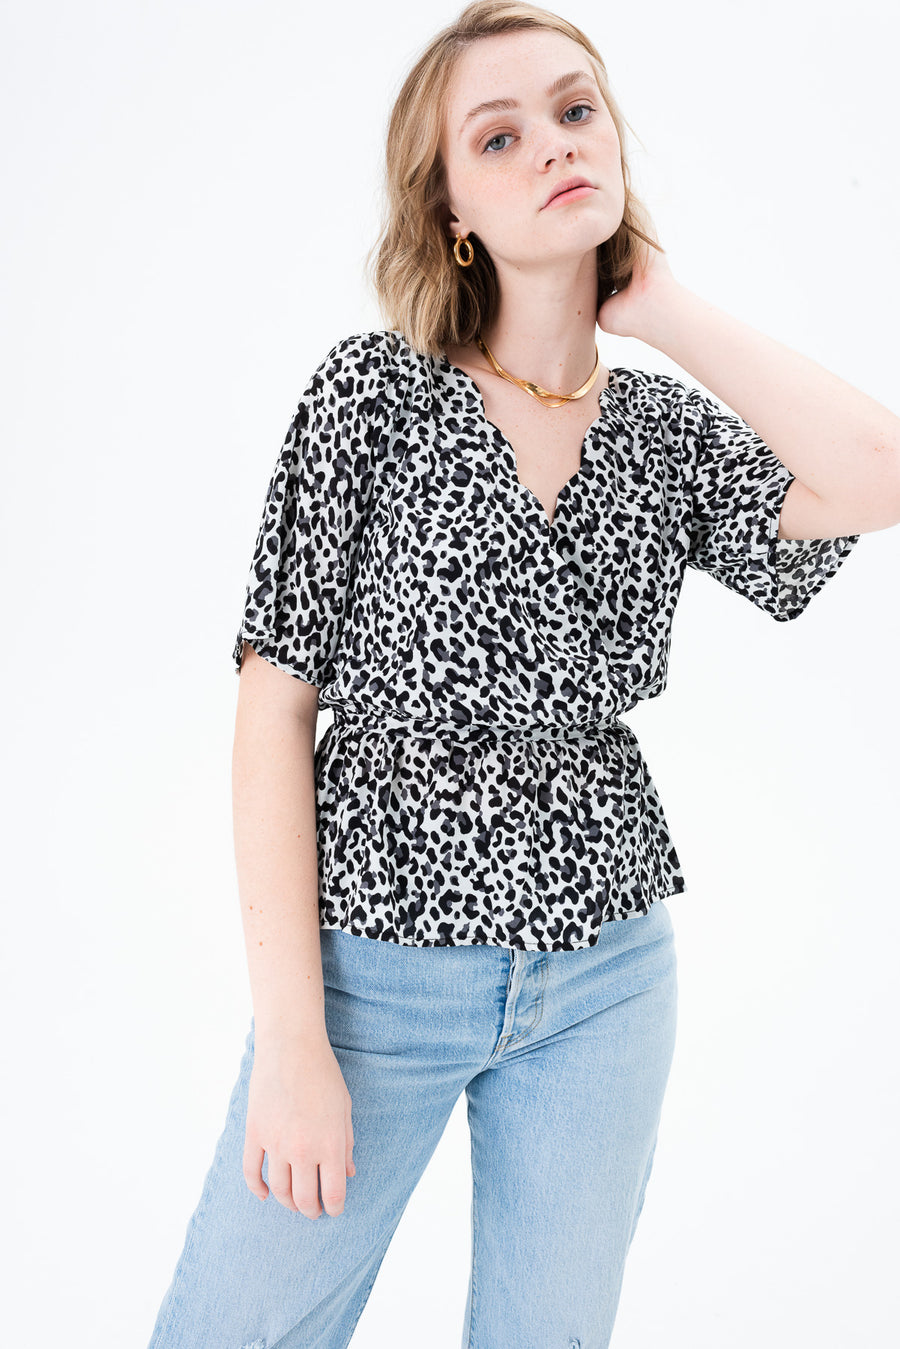 Una Crossover Scalloped Blouse